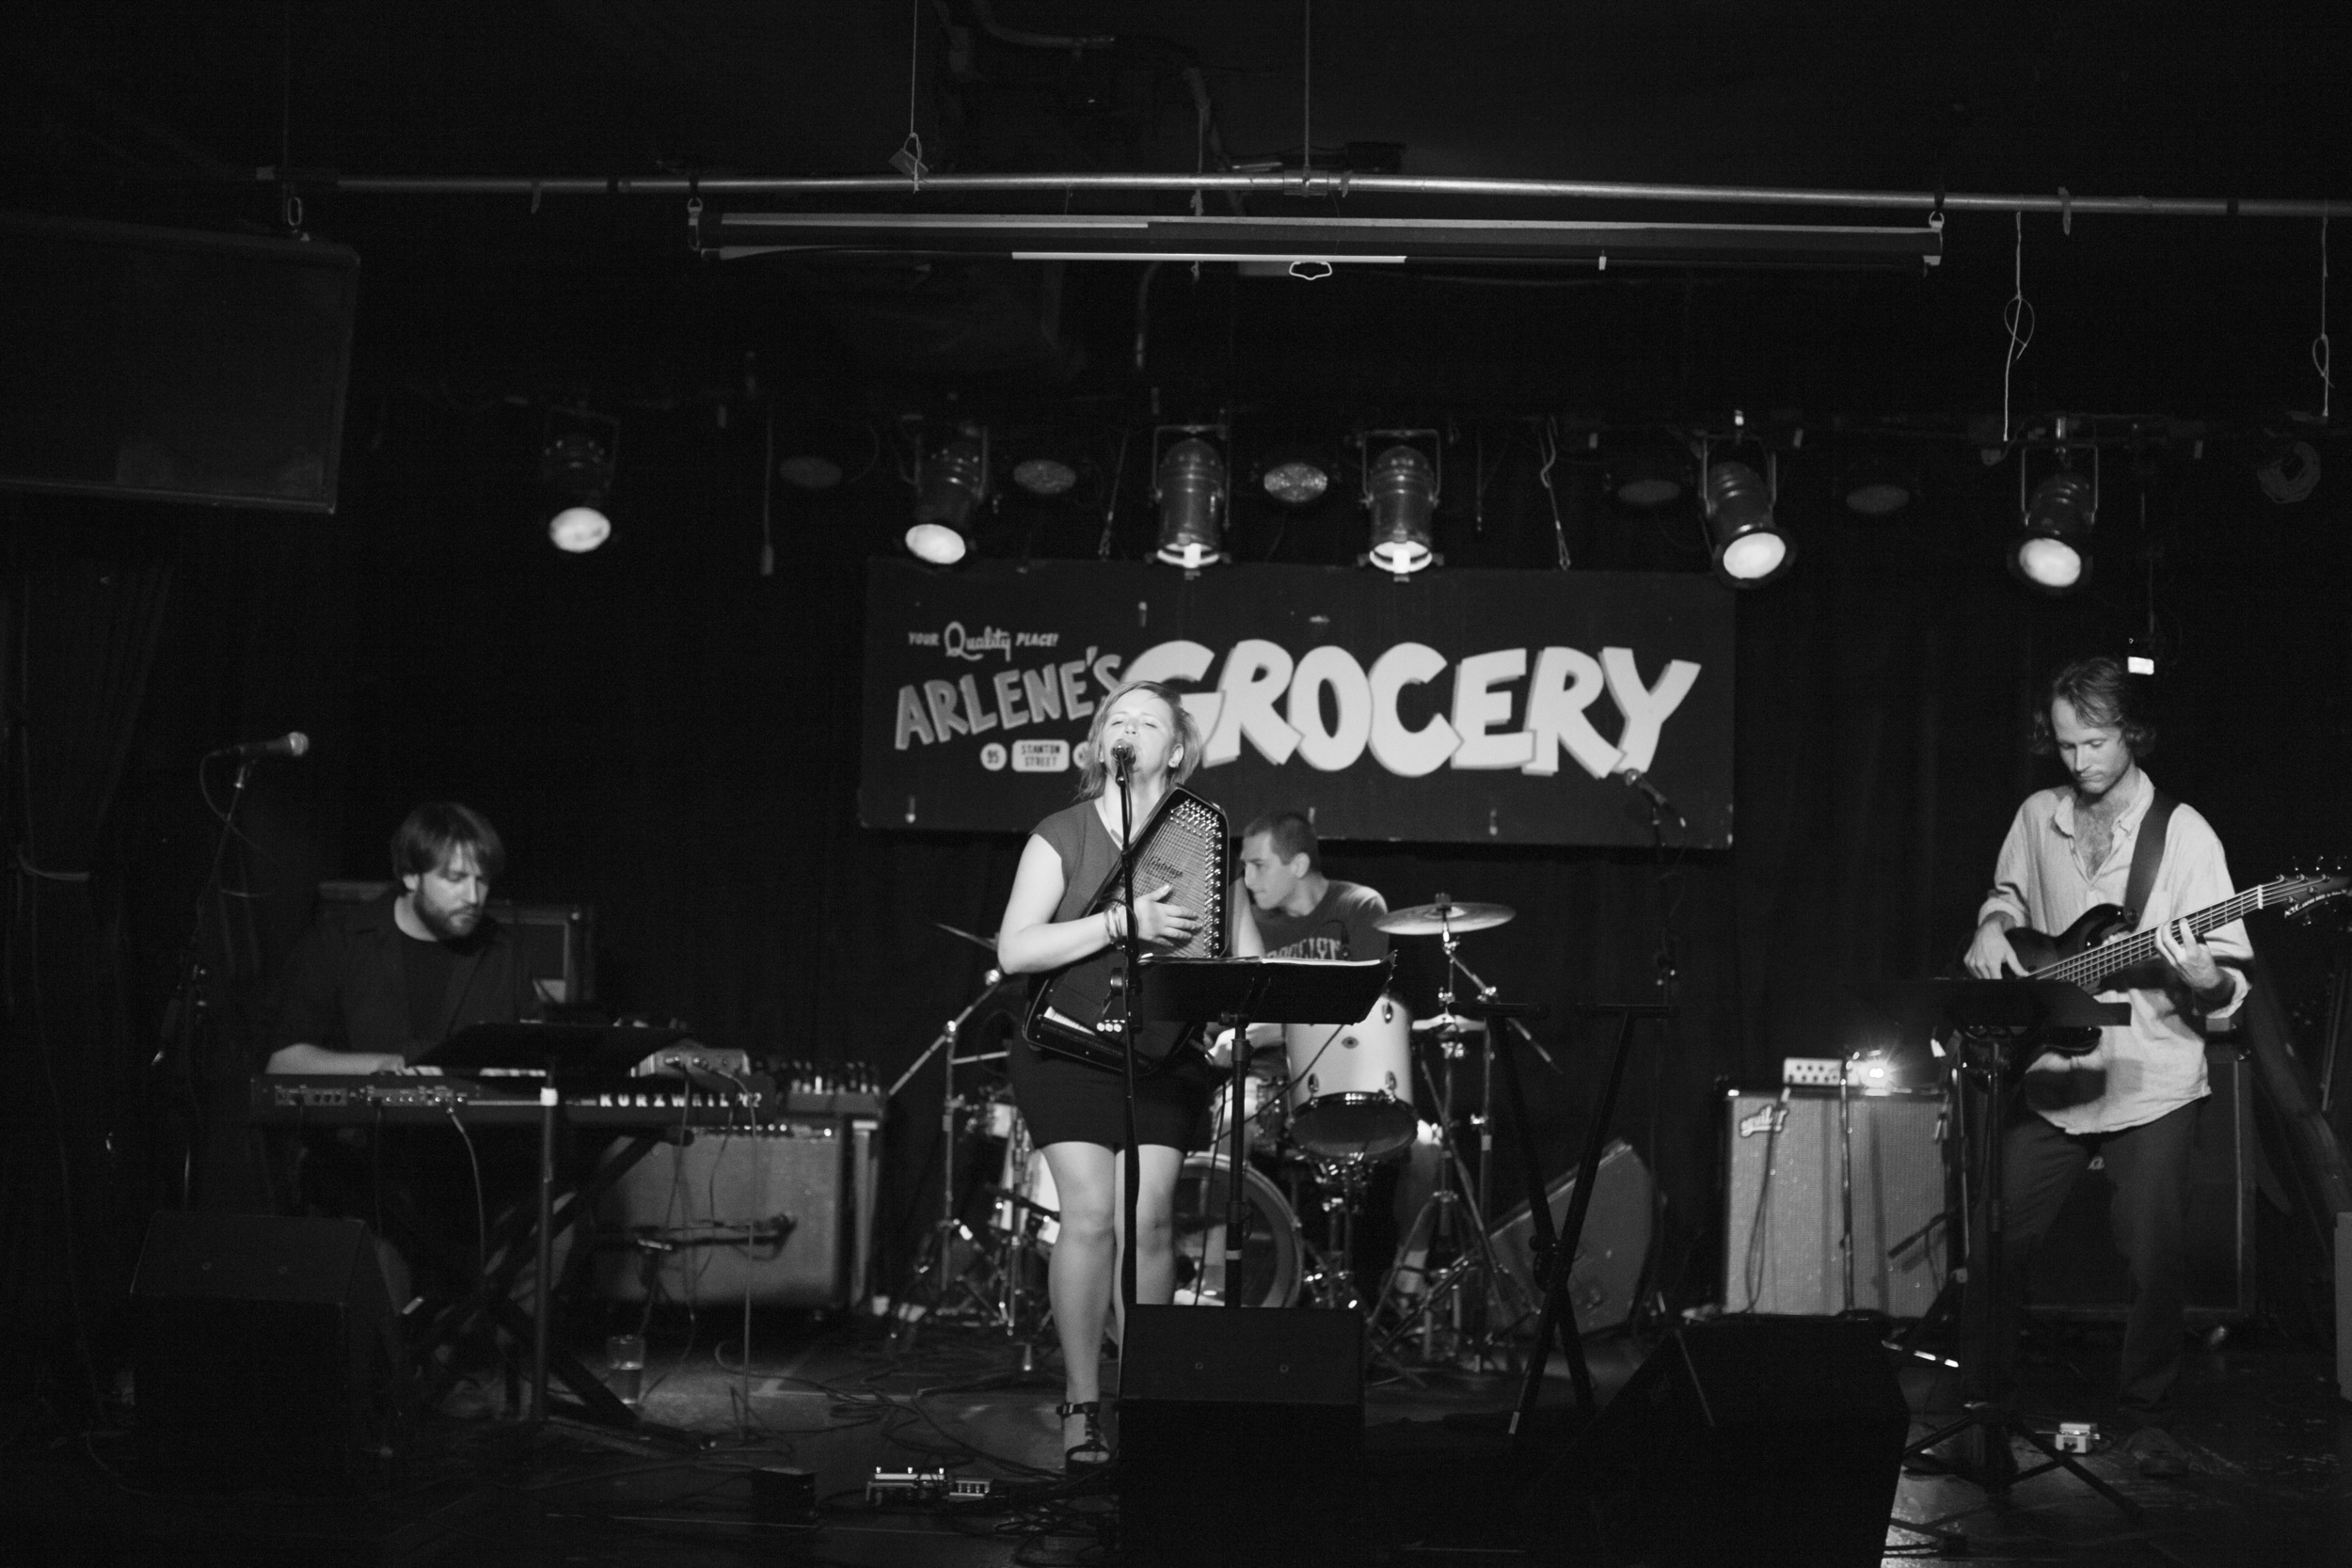 At Arlenes Grocery.  Photo credit: charlie-juliet photography